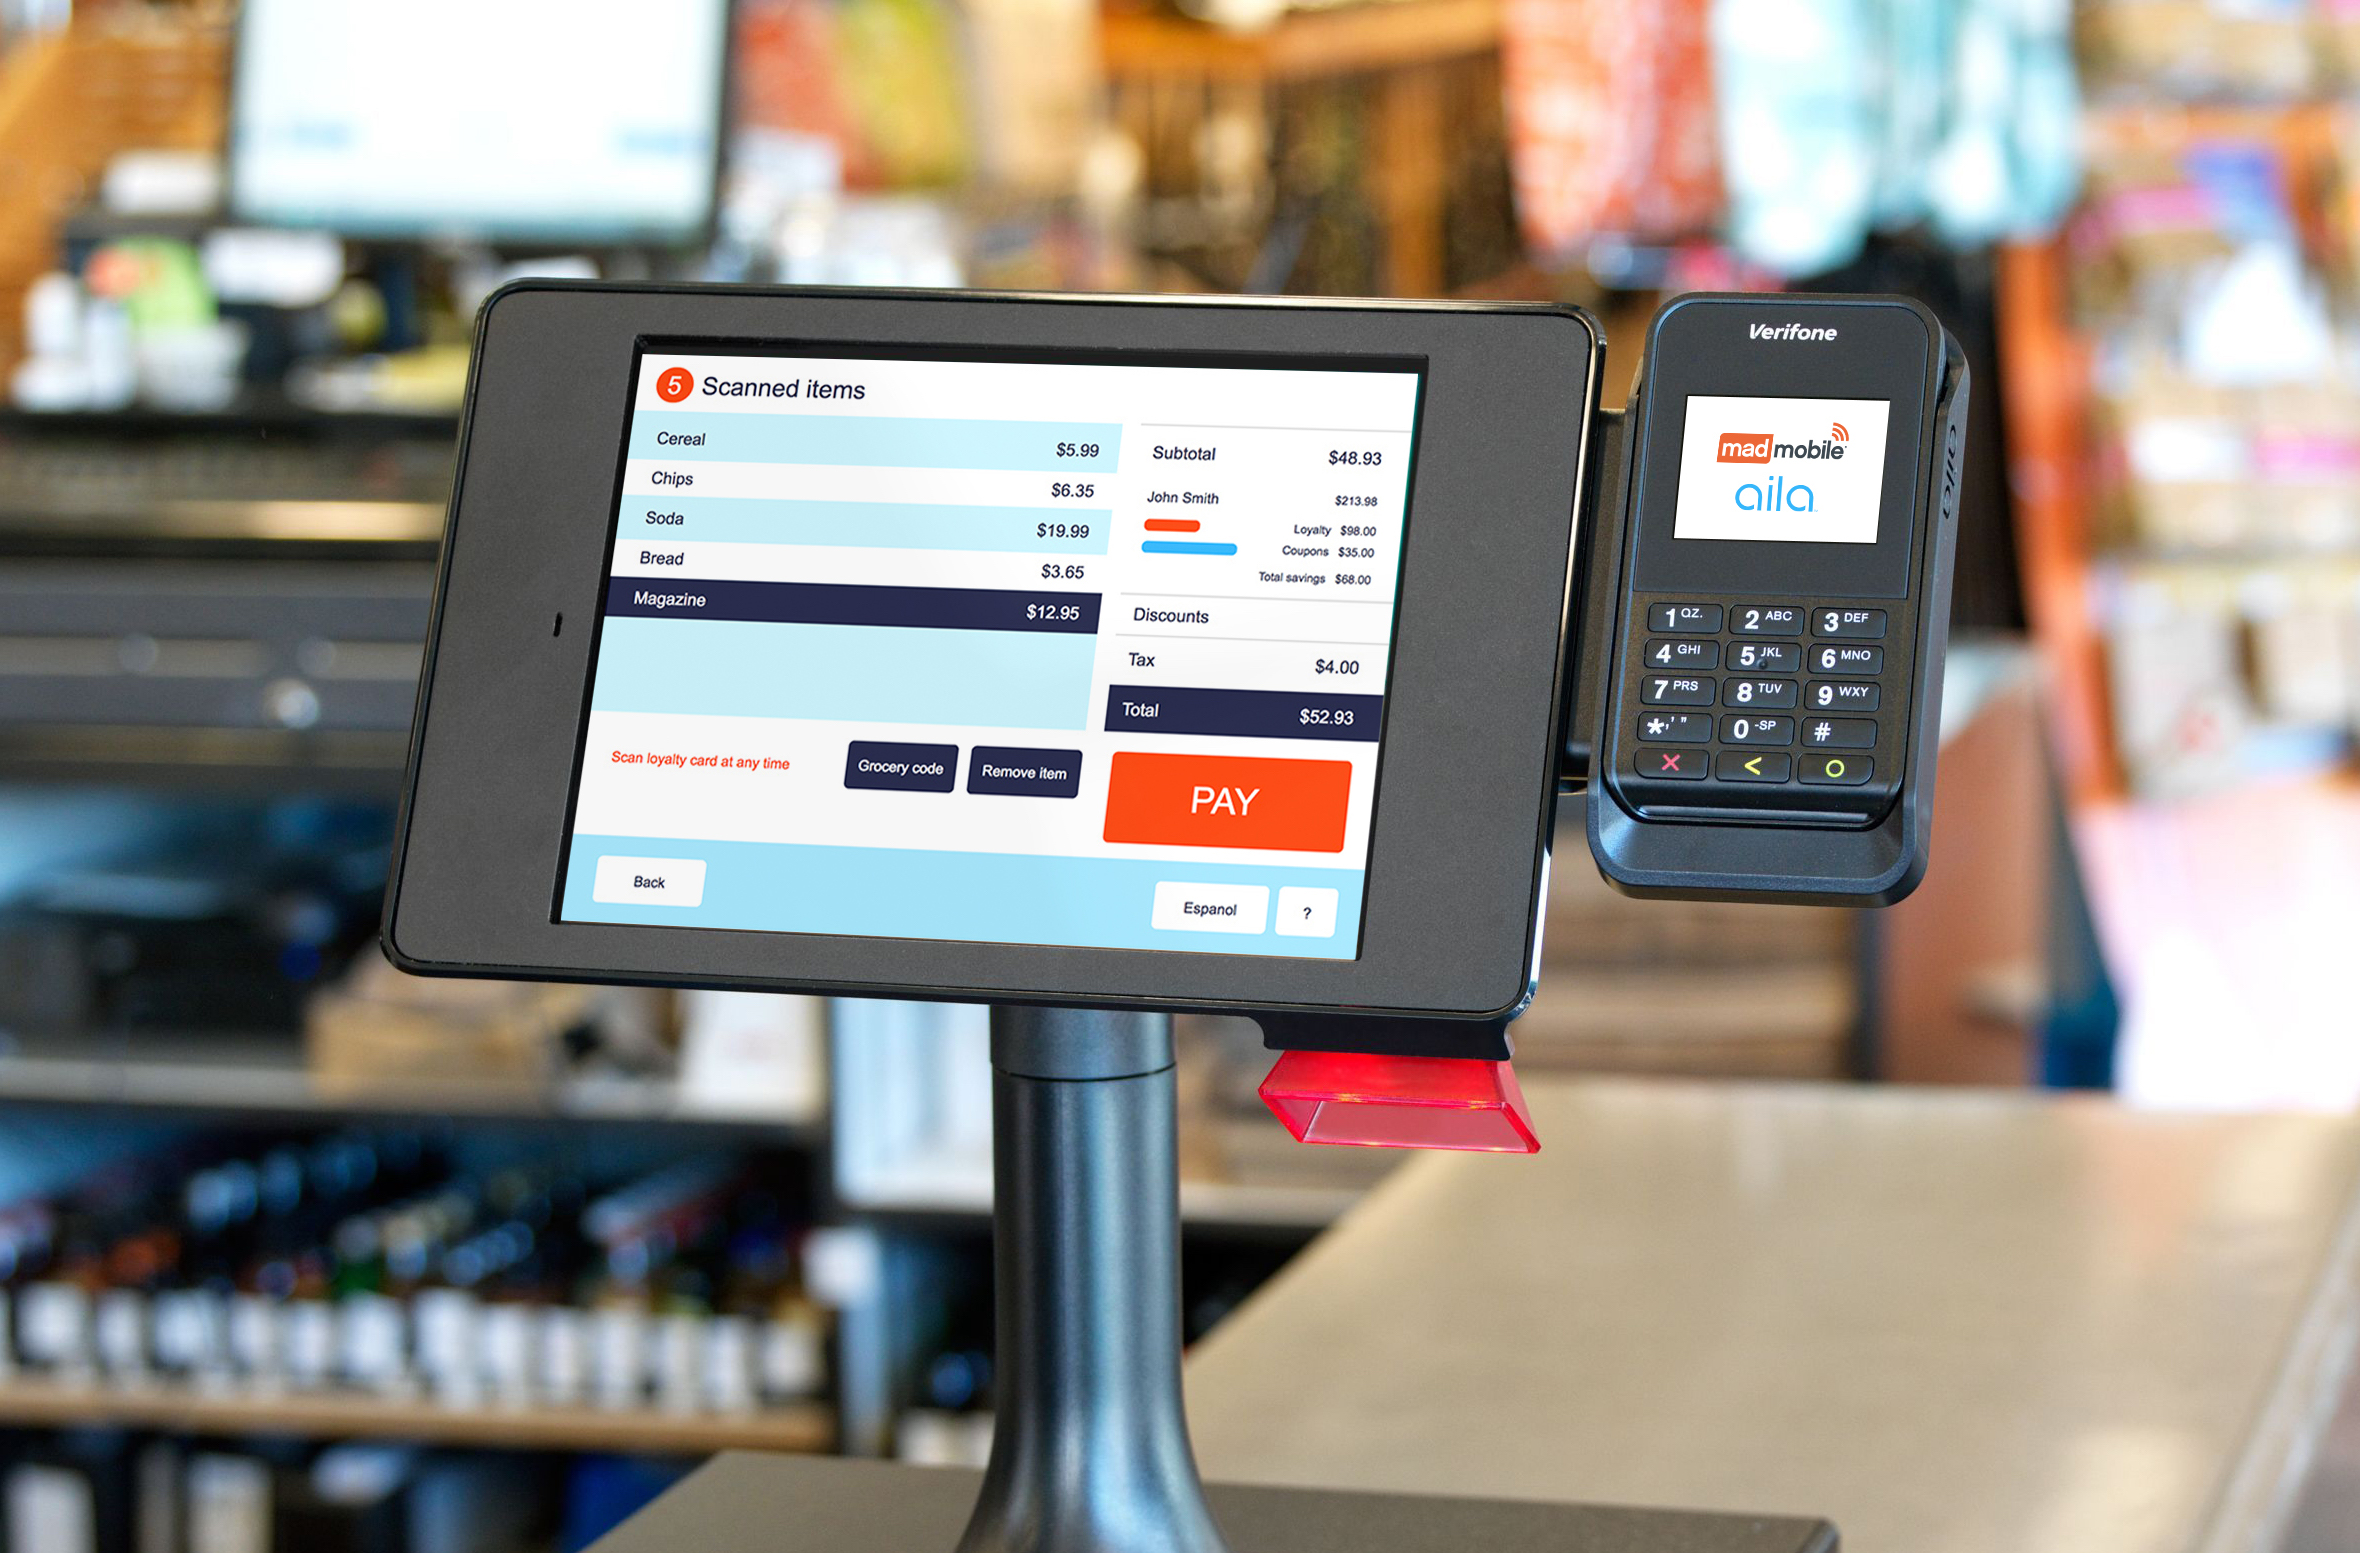 Aila + Mad Mobile: The Future of Self Checkout and mPOS